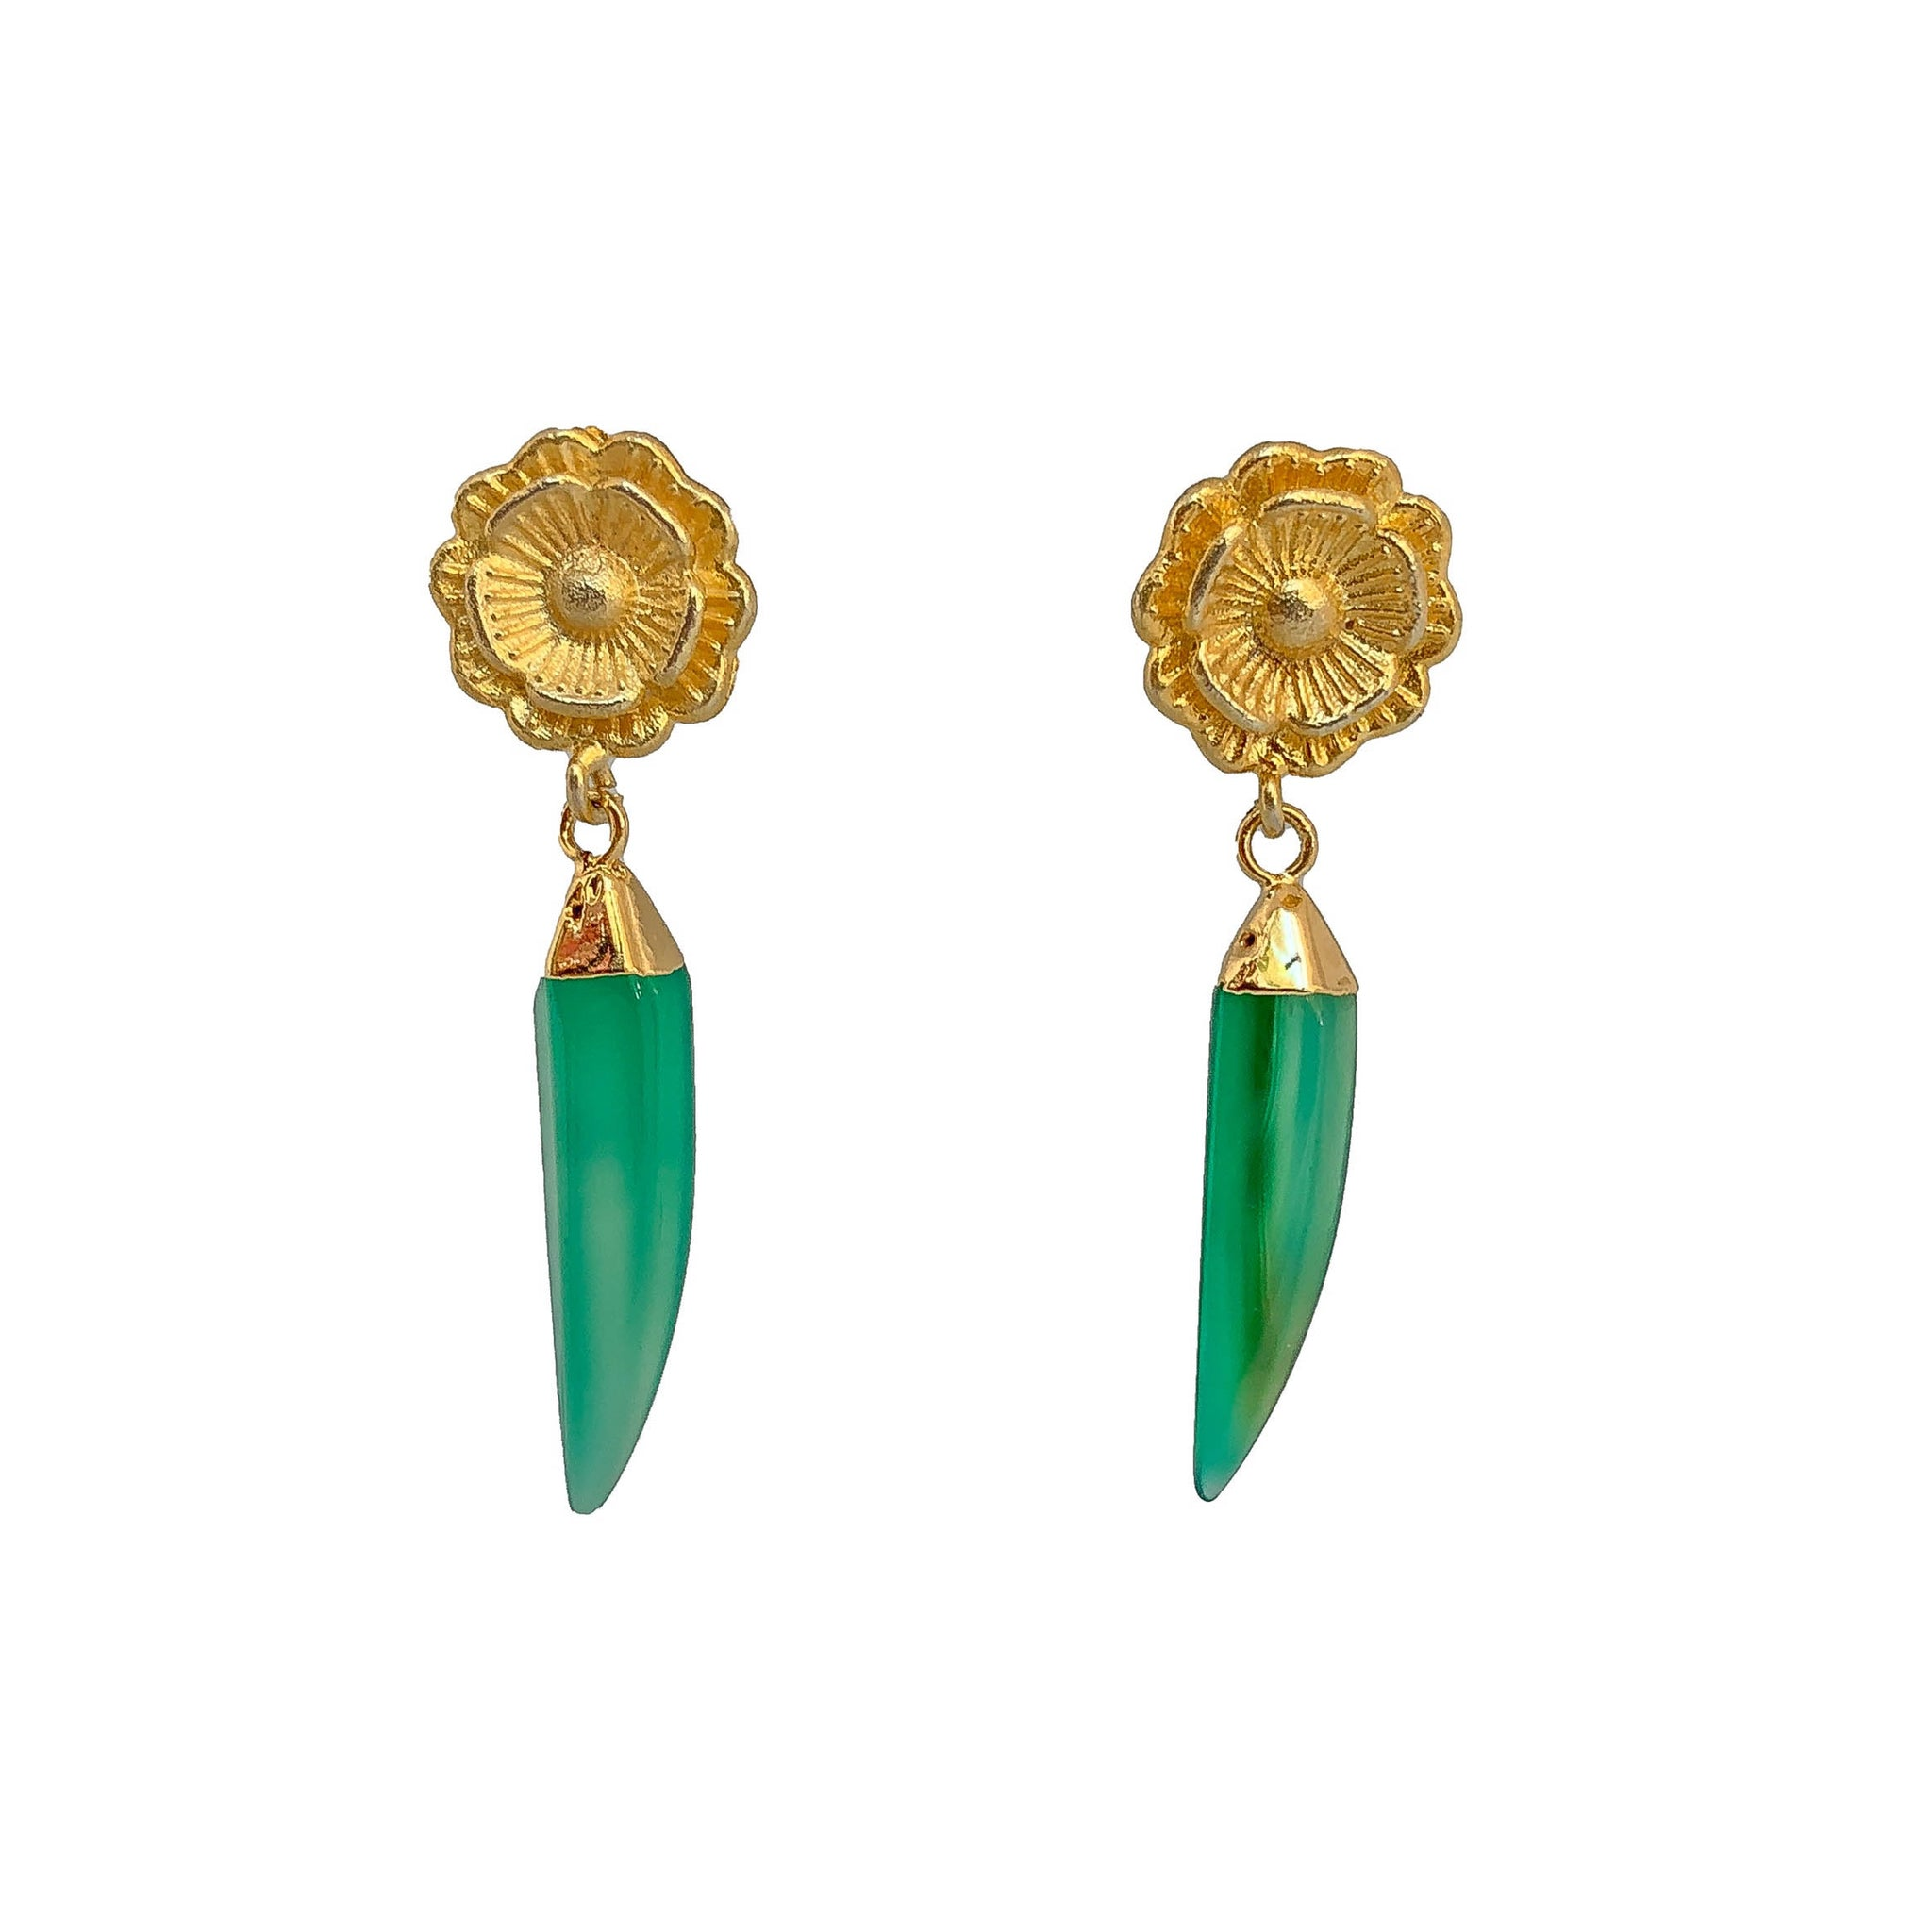 designer women earrings | handcrafted artisan earrings | luxury earrings by tanya litkovska